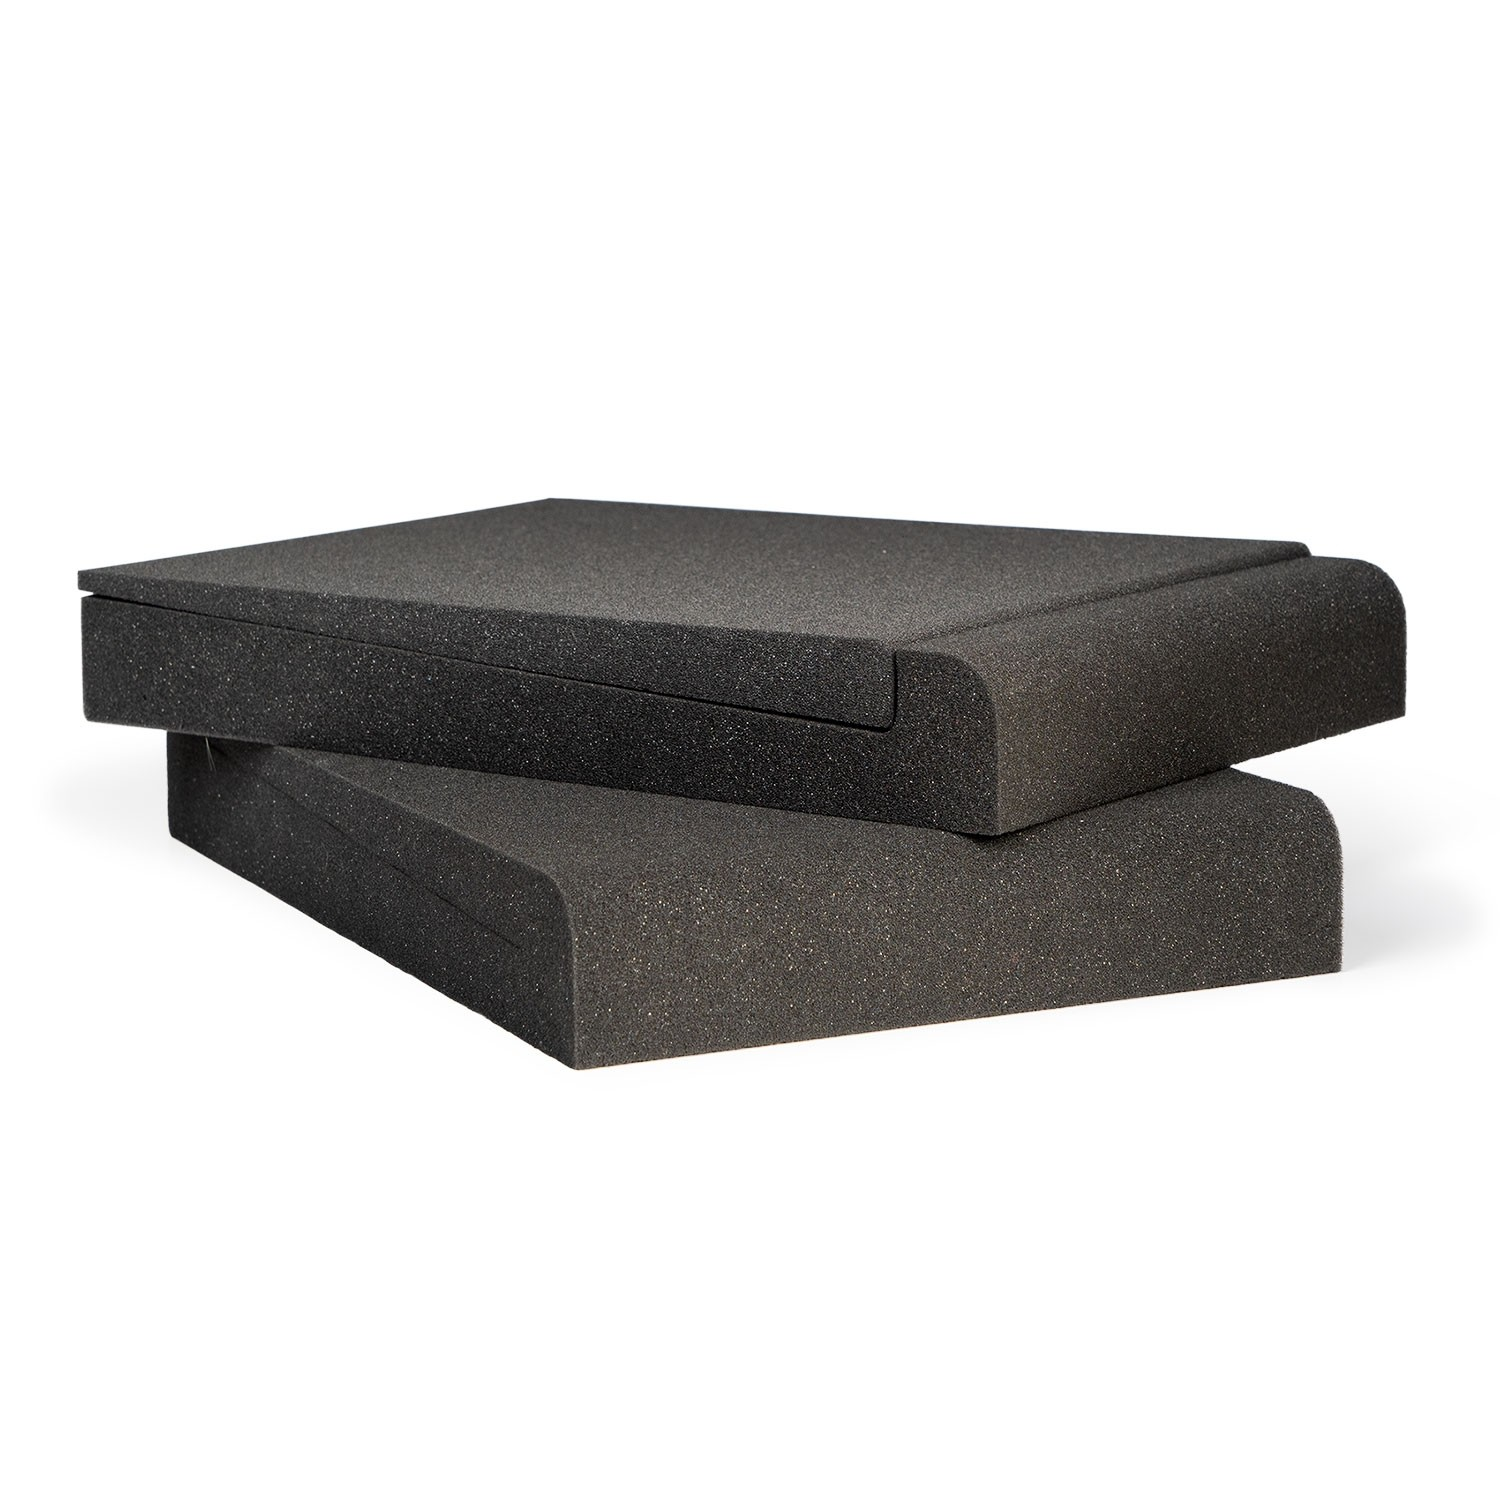 High Density Foam Speaker Isolation Pads - SP05 - alternate 3